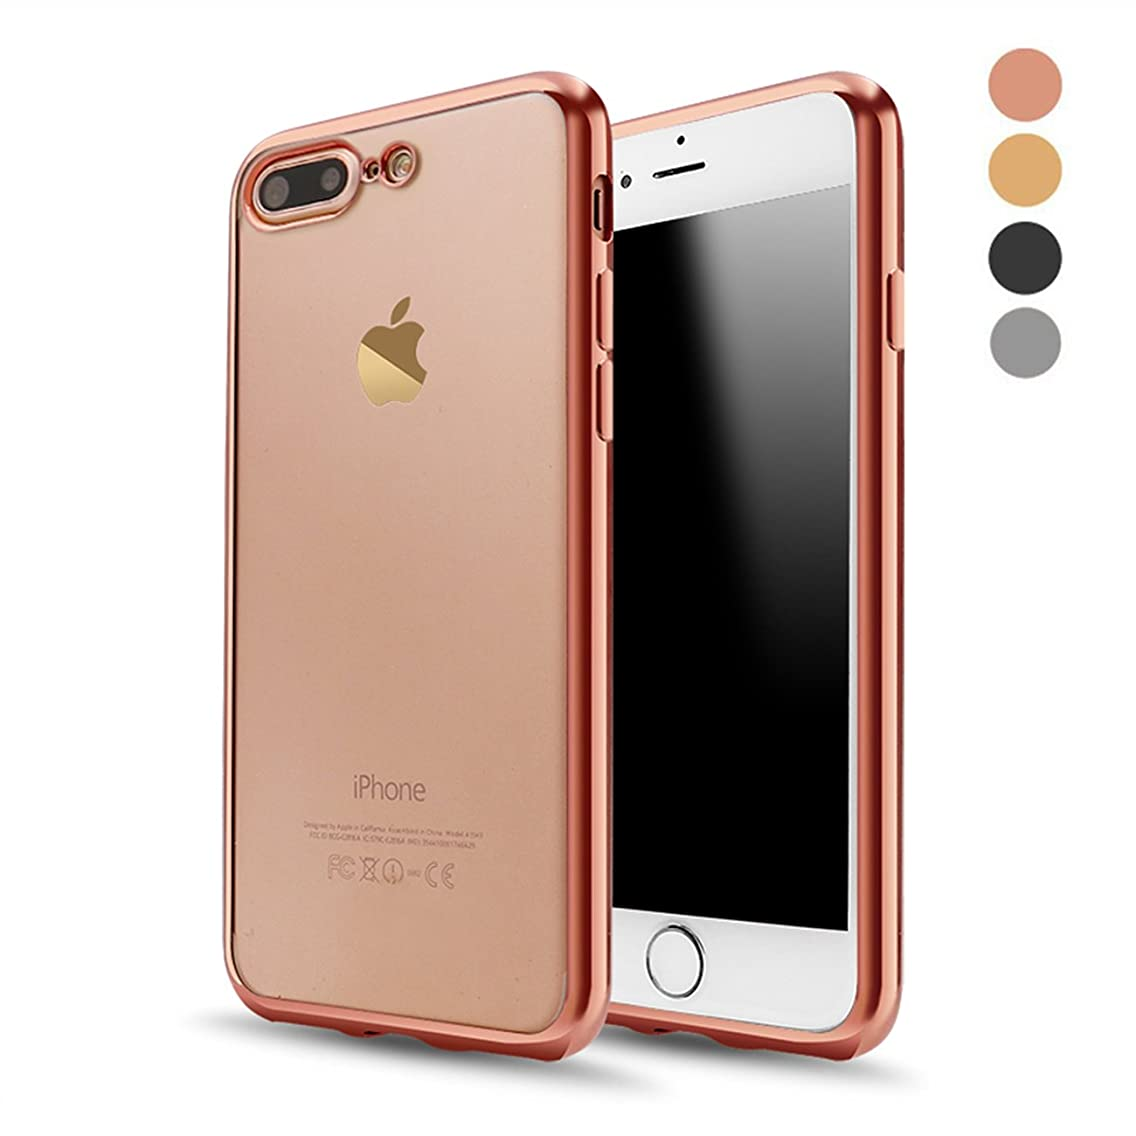 iPhone 8 Plus Case, iPhone 7 Plus Case, RLINGX Soft TPU Gel Bumper Cover Shell[Support Wireless Charging] [Slim Fit]Style Clear Protective Case for Apple iPhone 8 Plus 5.5 In(Rose Gold)